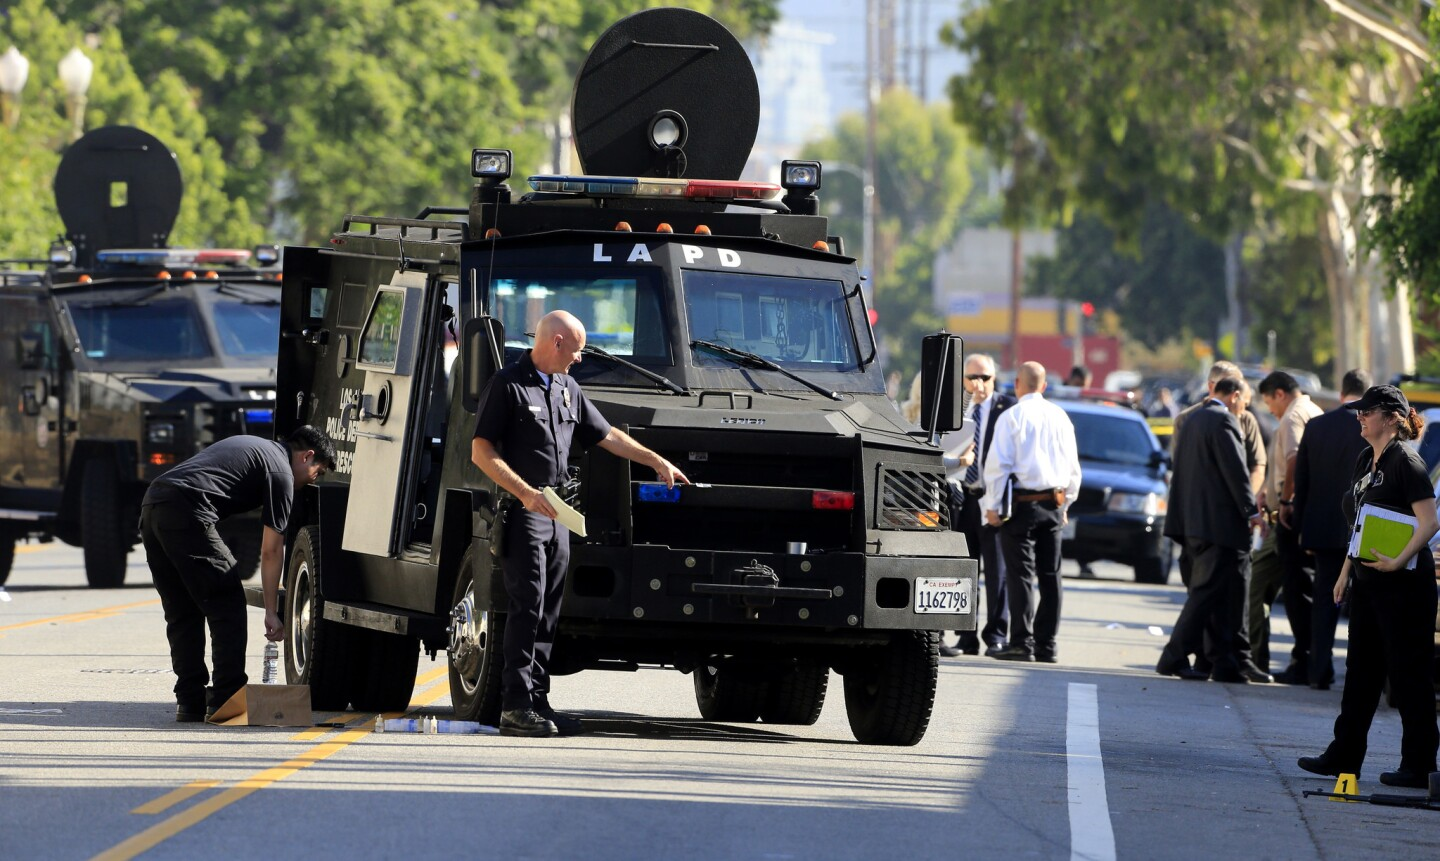 Los Angeles Police Cmdr. Andrew Smith looks at the damage to an LAPD BearCat, a wheeled armored personnel carrier, after an officer involved shooting that killed a man early Monday morning.